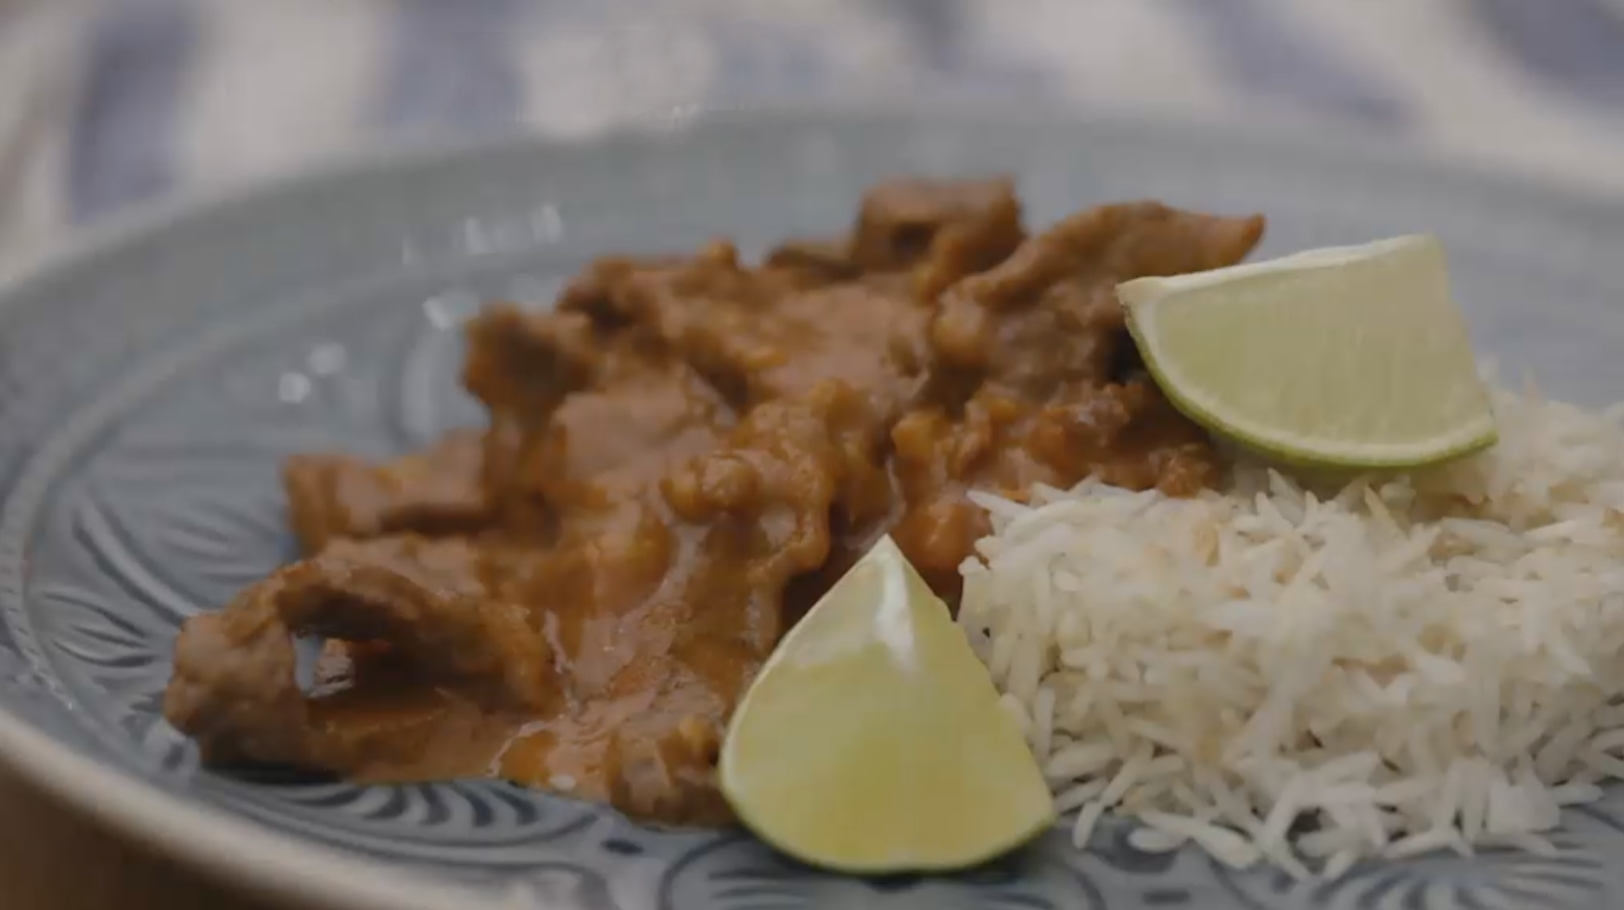 Ricetta Panang curry con manzo | Agrodolce